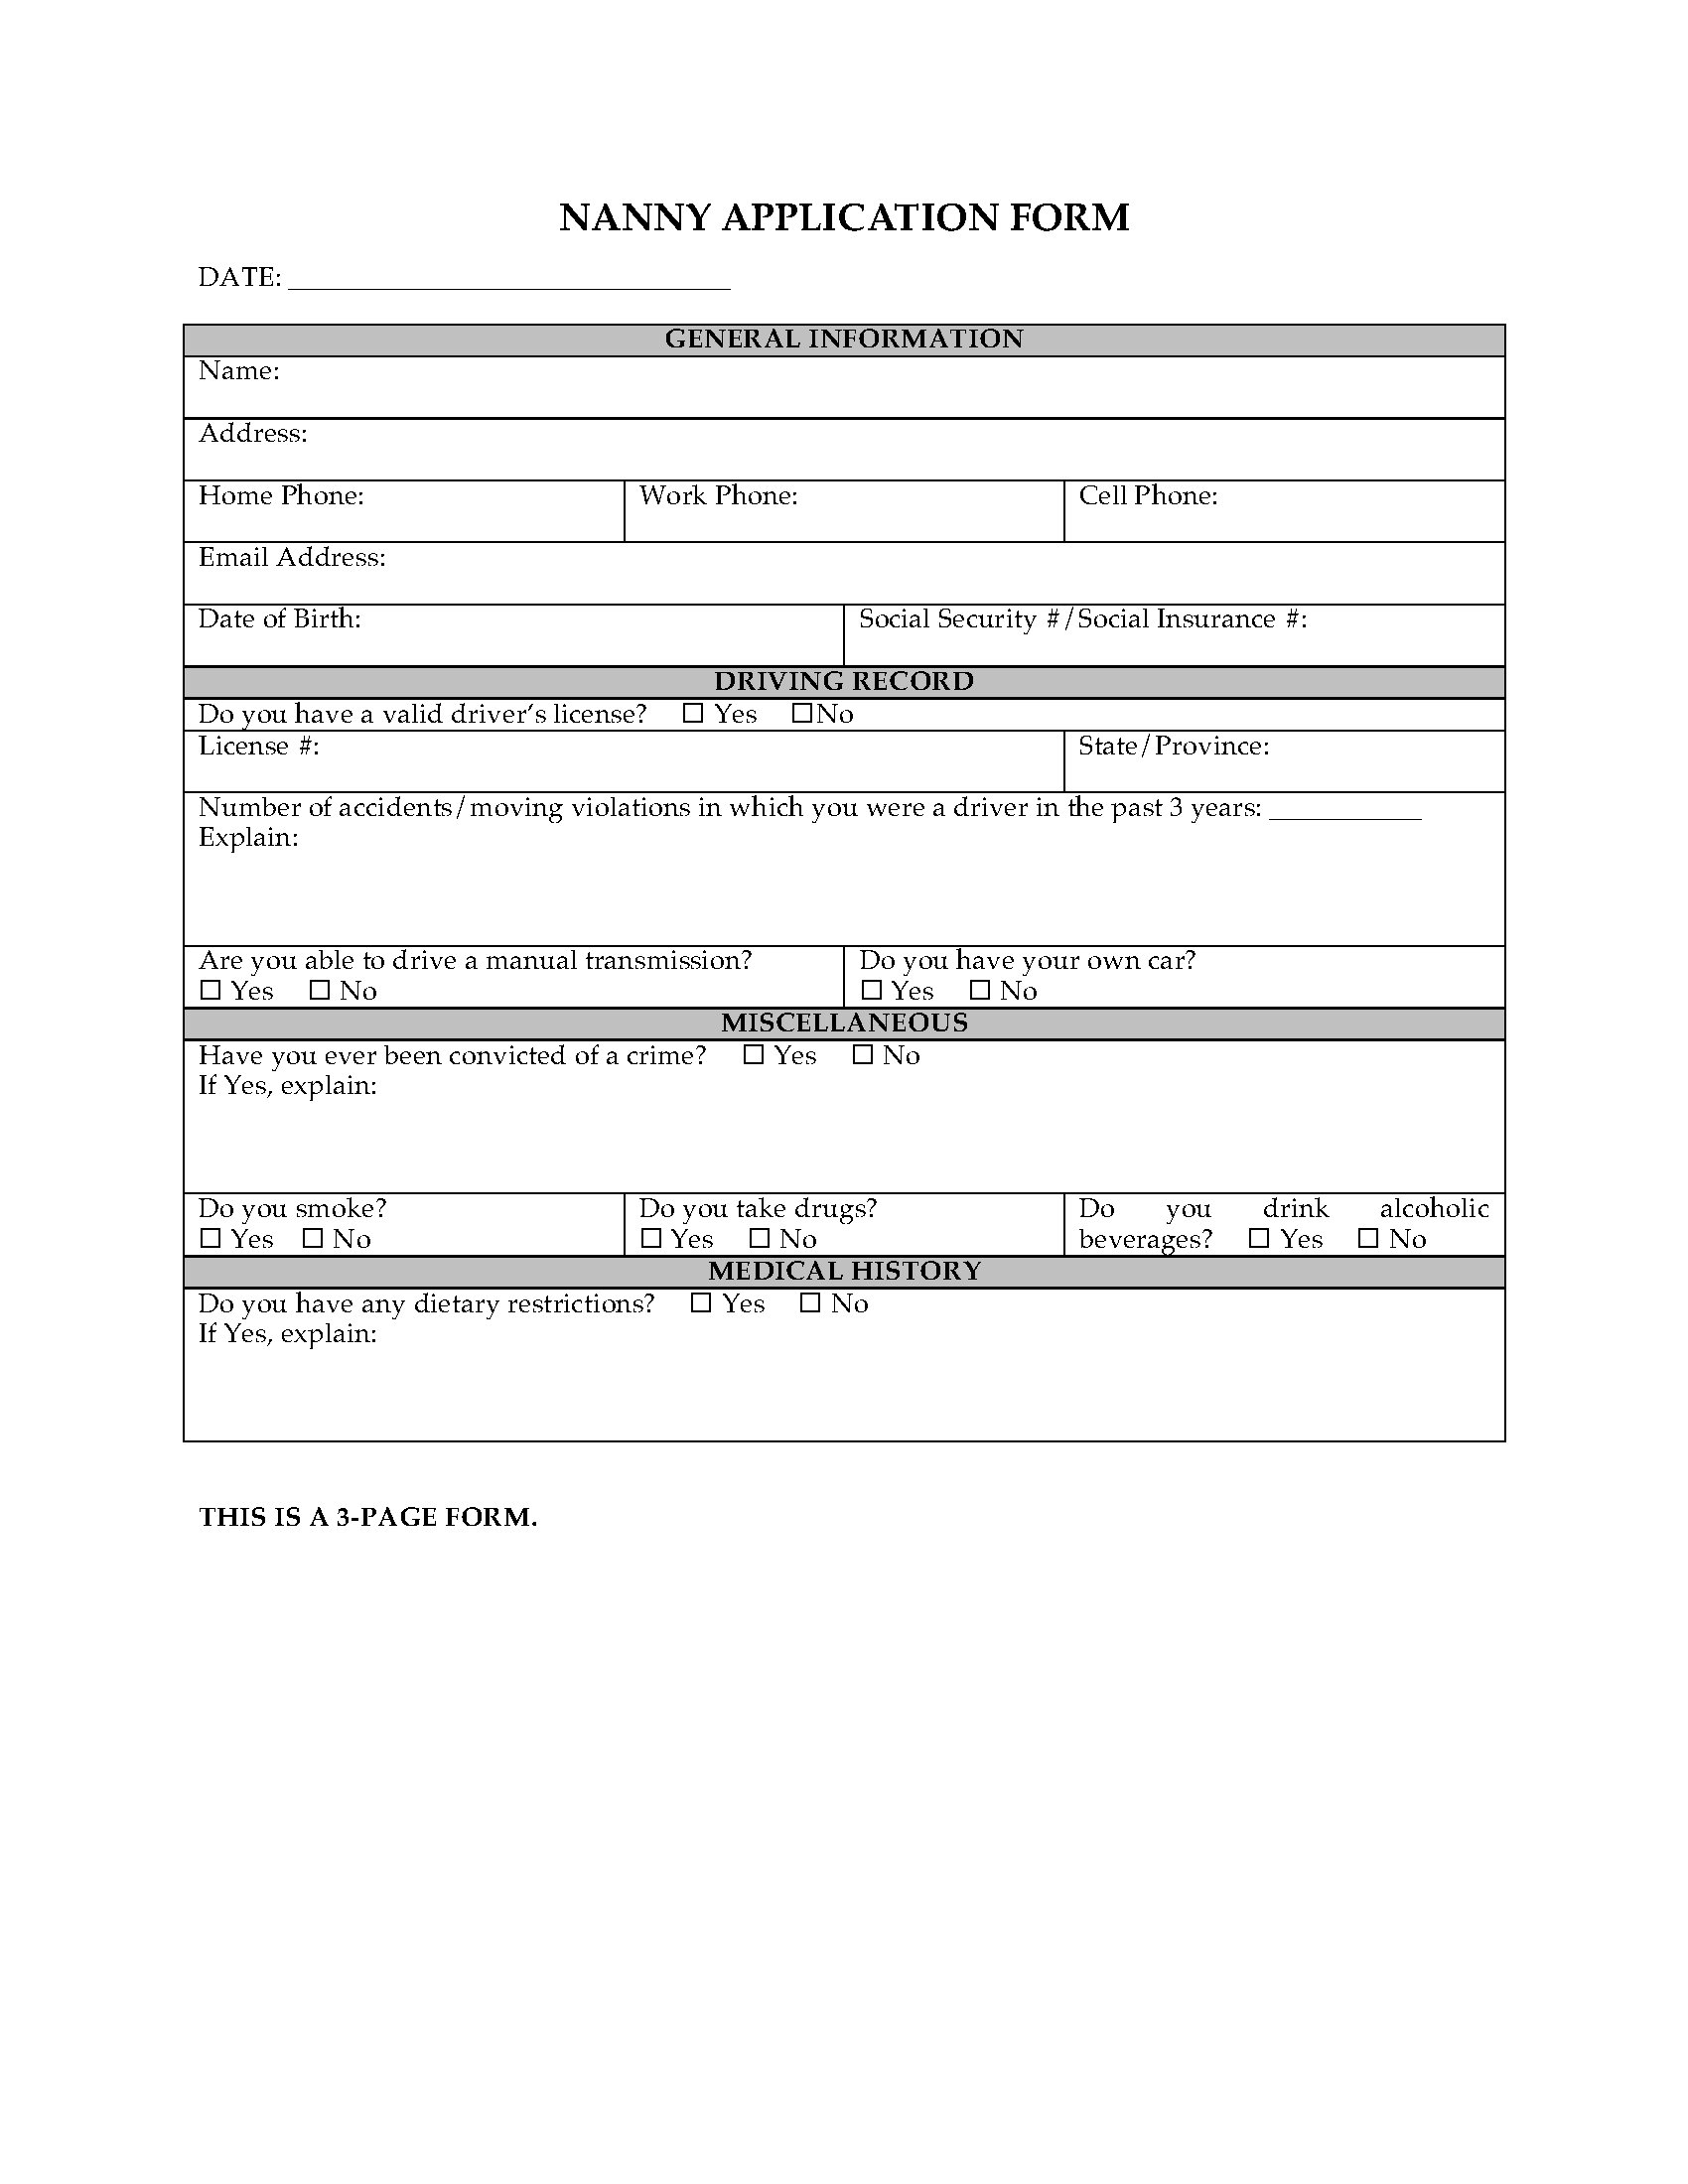 nanny employment application form legal forms and. Black Bedroom Furniture Sets. Home Design Ideas